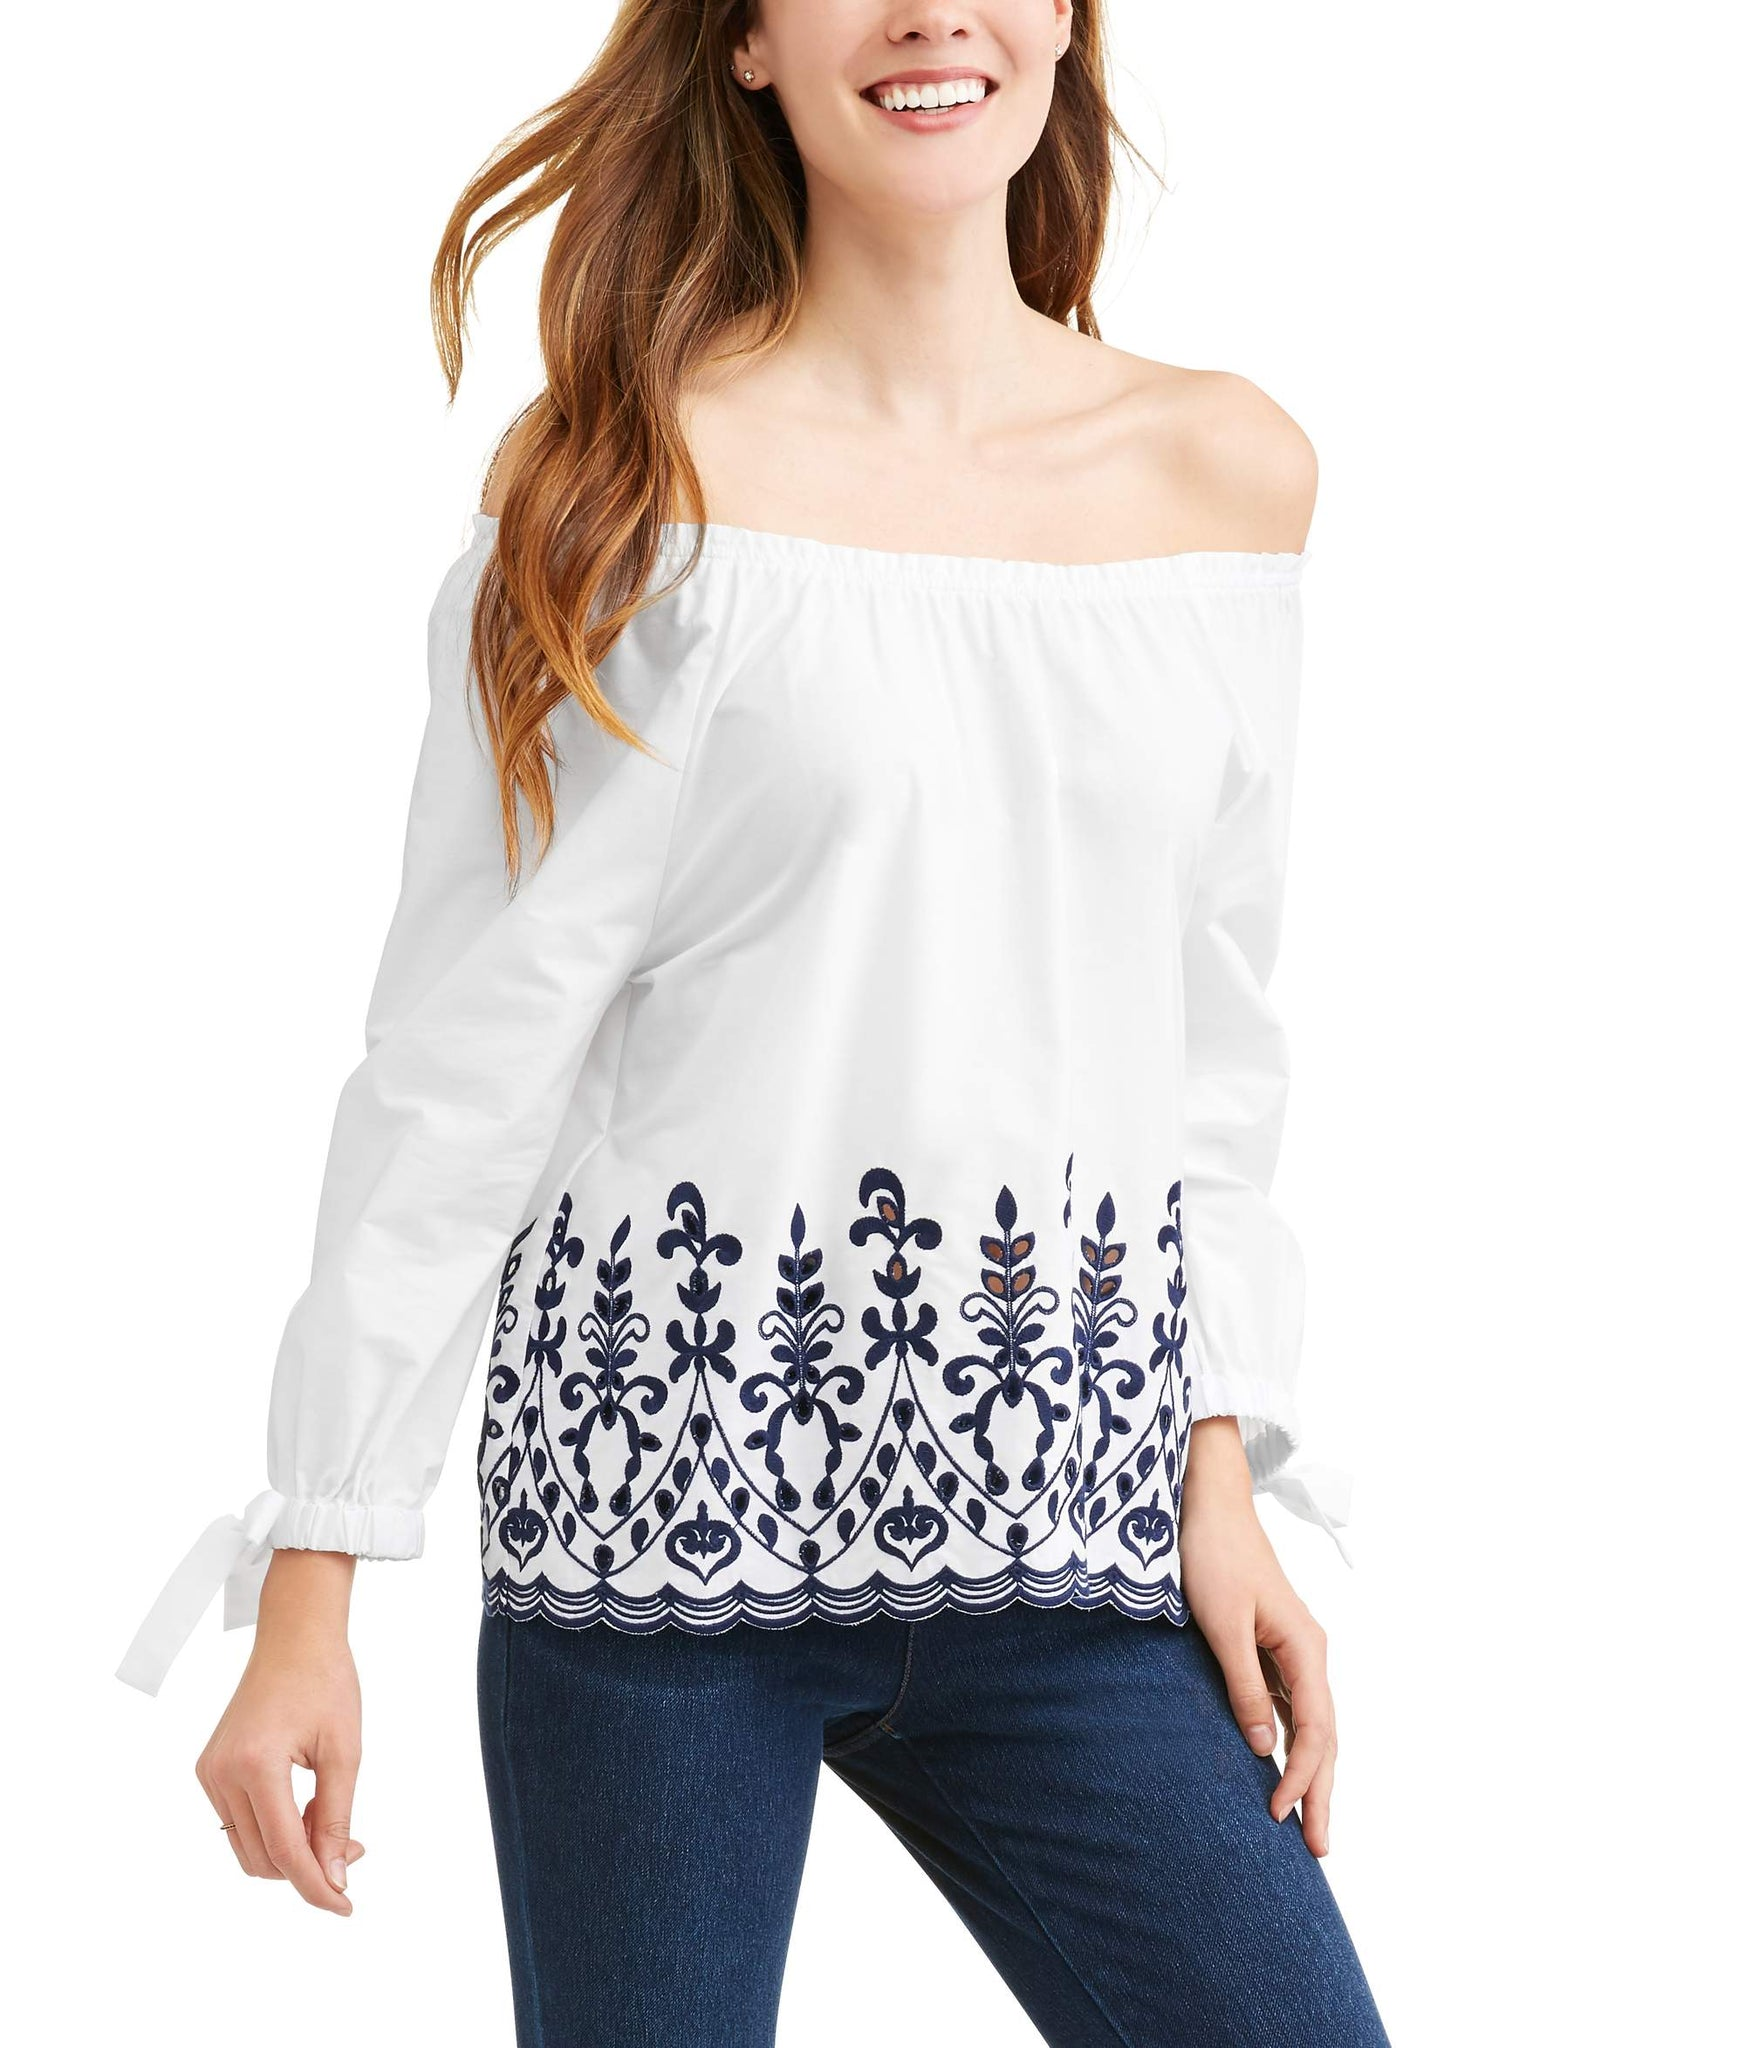 Women's Embroidered Tie Sleeve Top